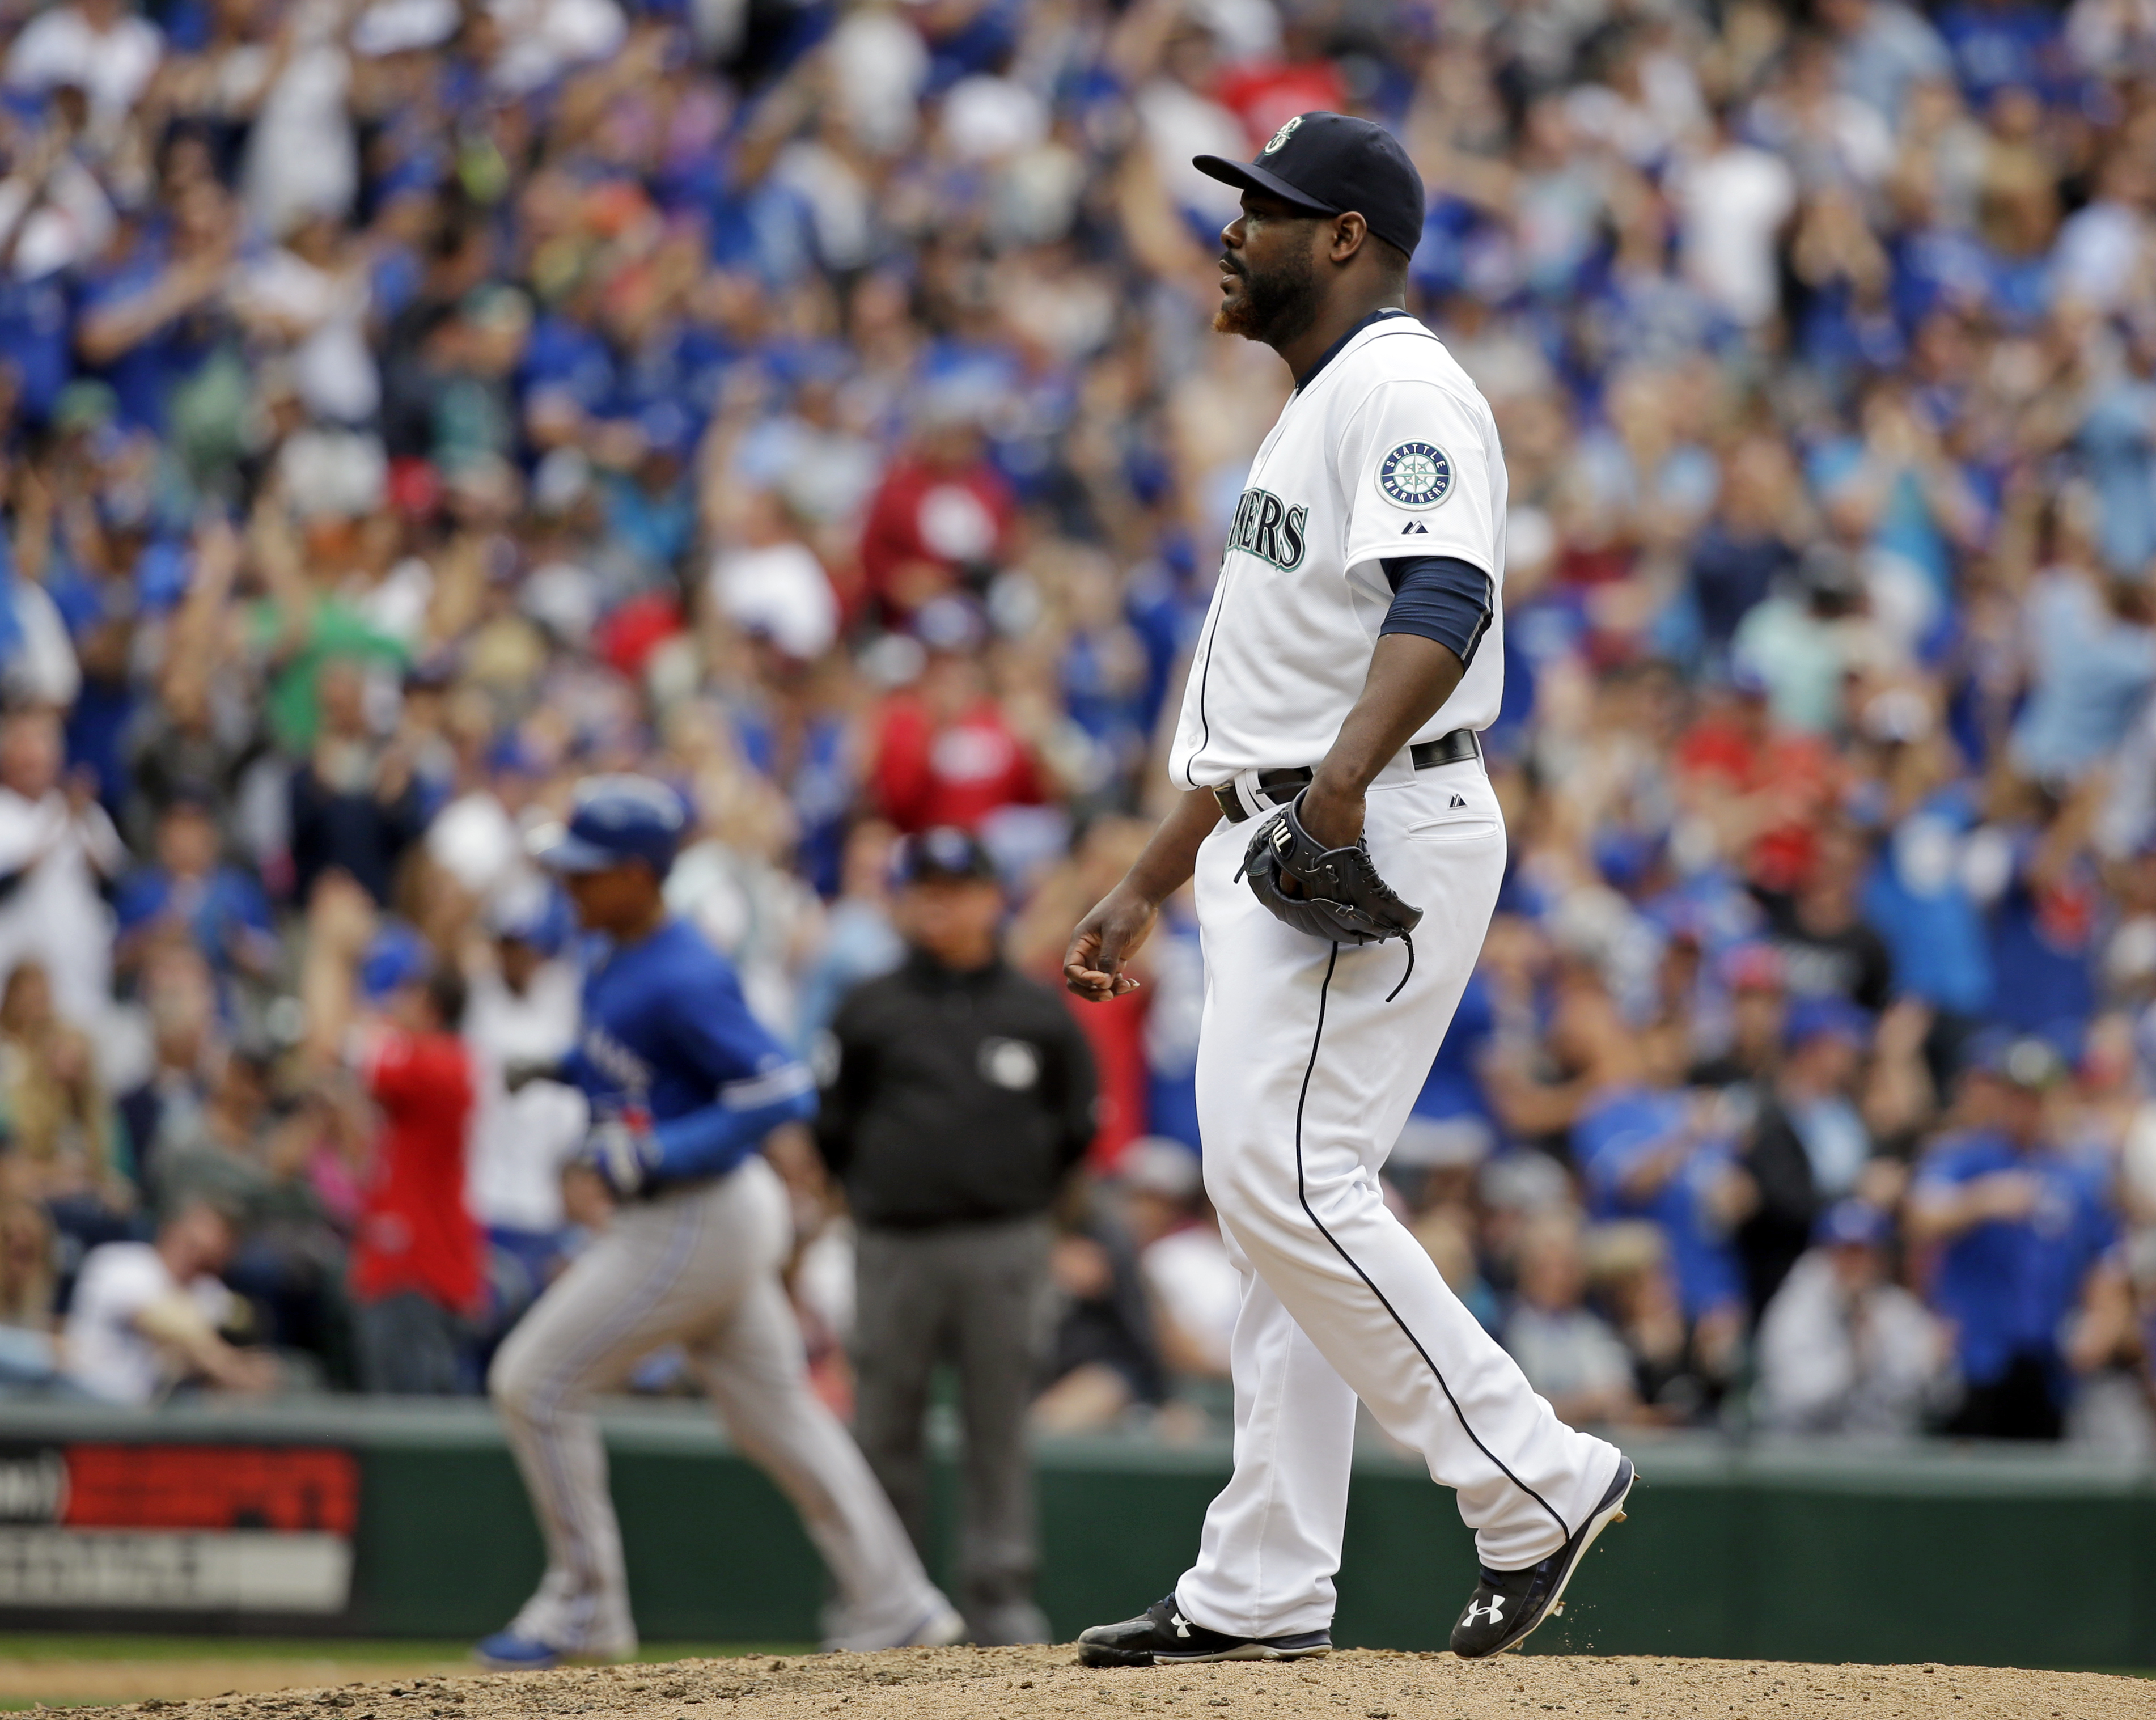 Seattle Mariners relief pitcher Fernando Rodney, right, waits on the mound as Toronto Blue Jays' Ezequiel Carrera rounds the bases after hitting a two-run home run in the eighth inning of a baseball game Saturday, July 25, 2015, in Seattle. (AP Photo/Elai